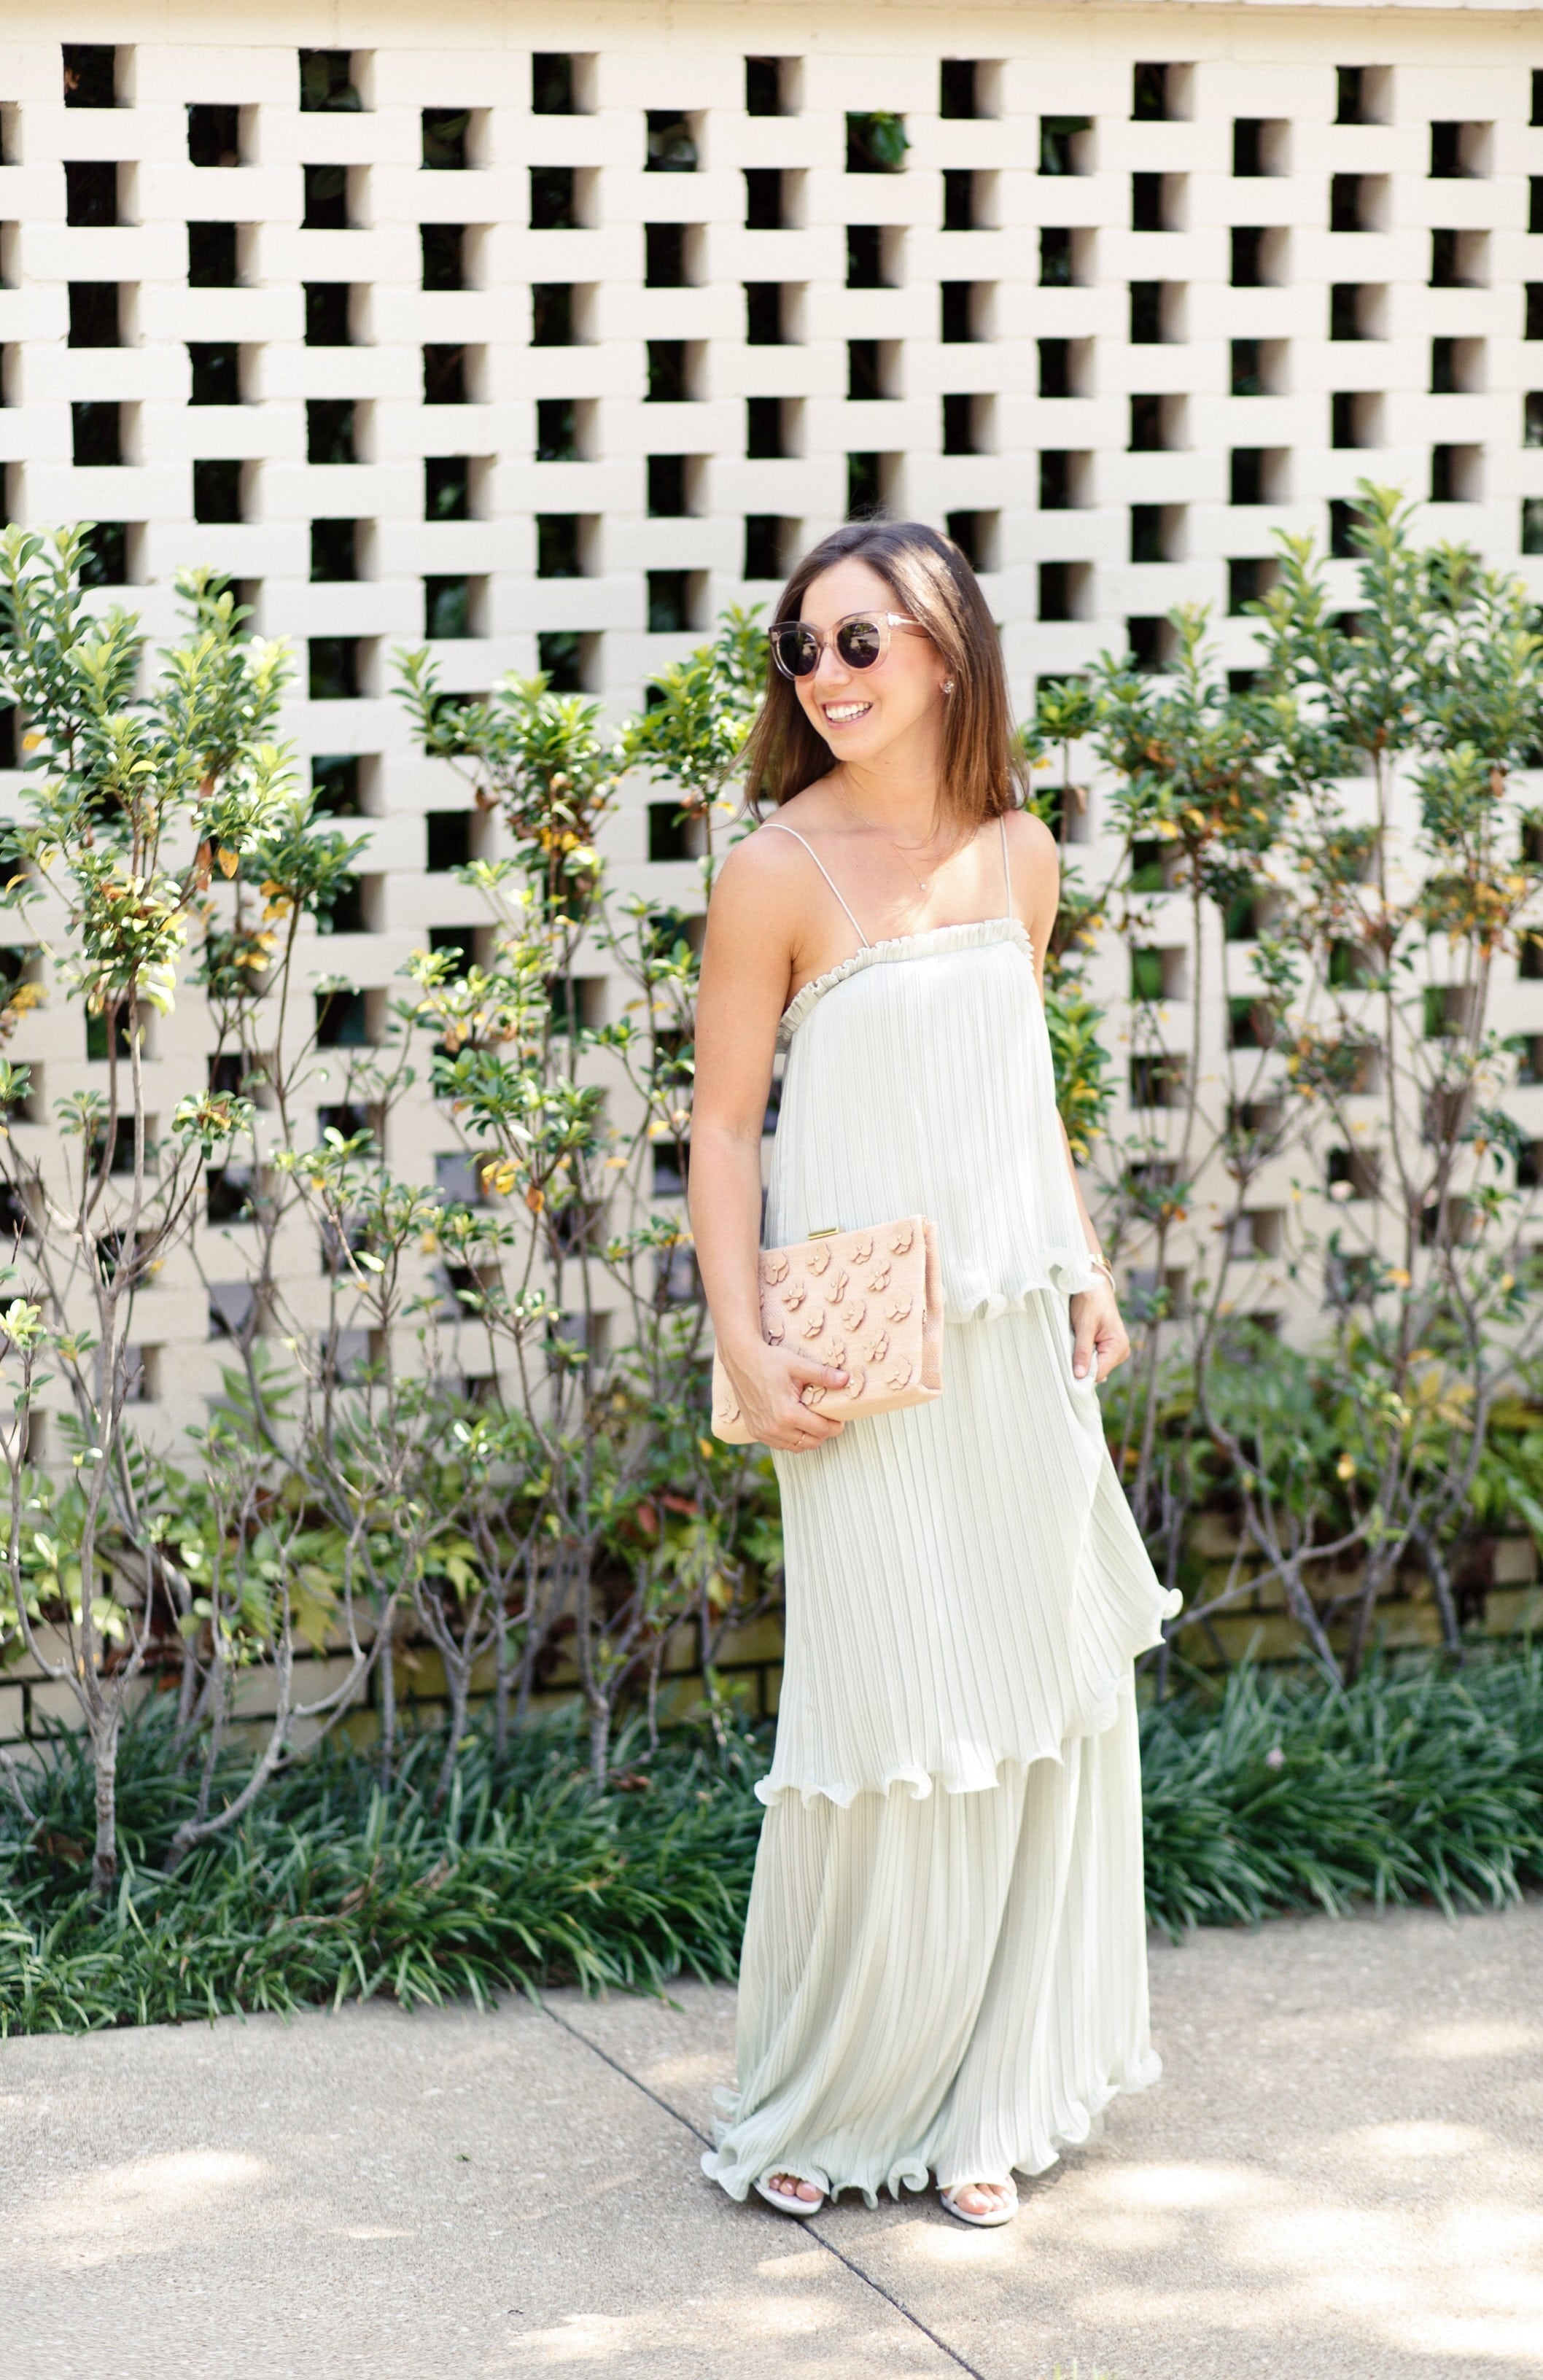 ASOS Clutch and Pleated Tiered Dress